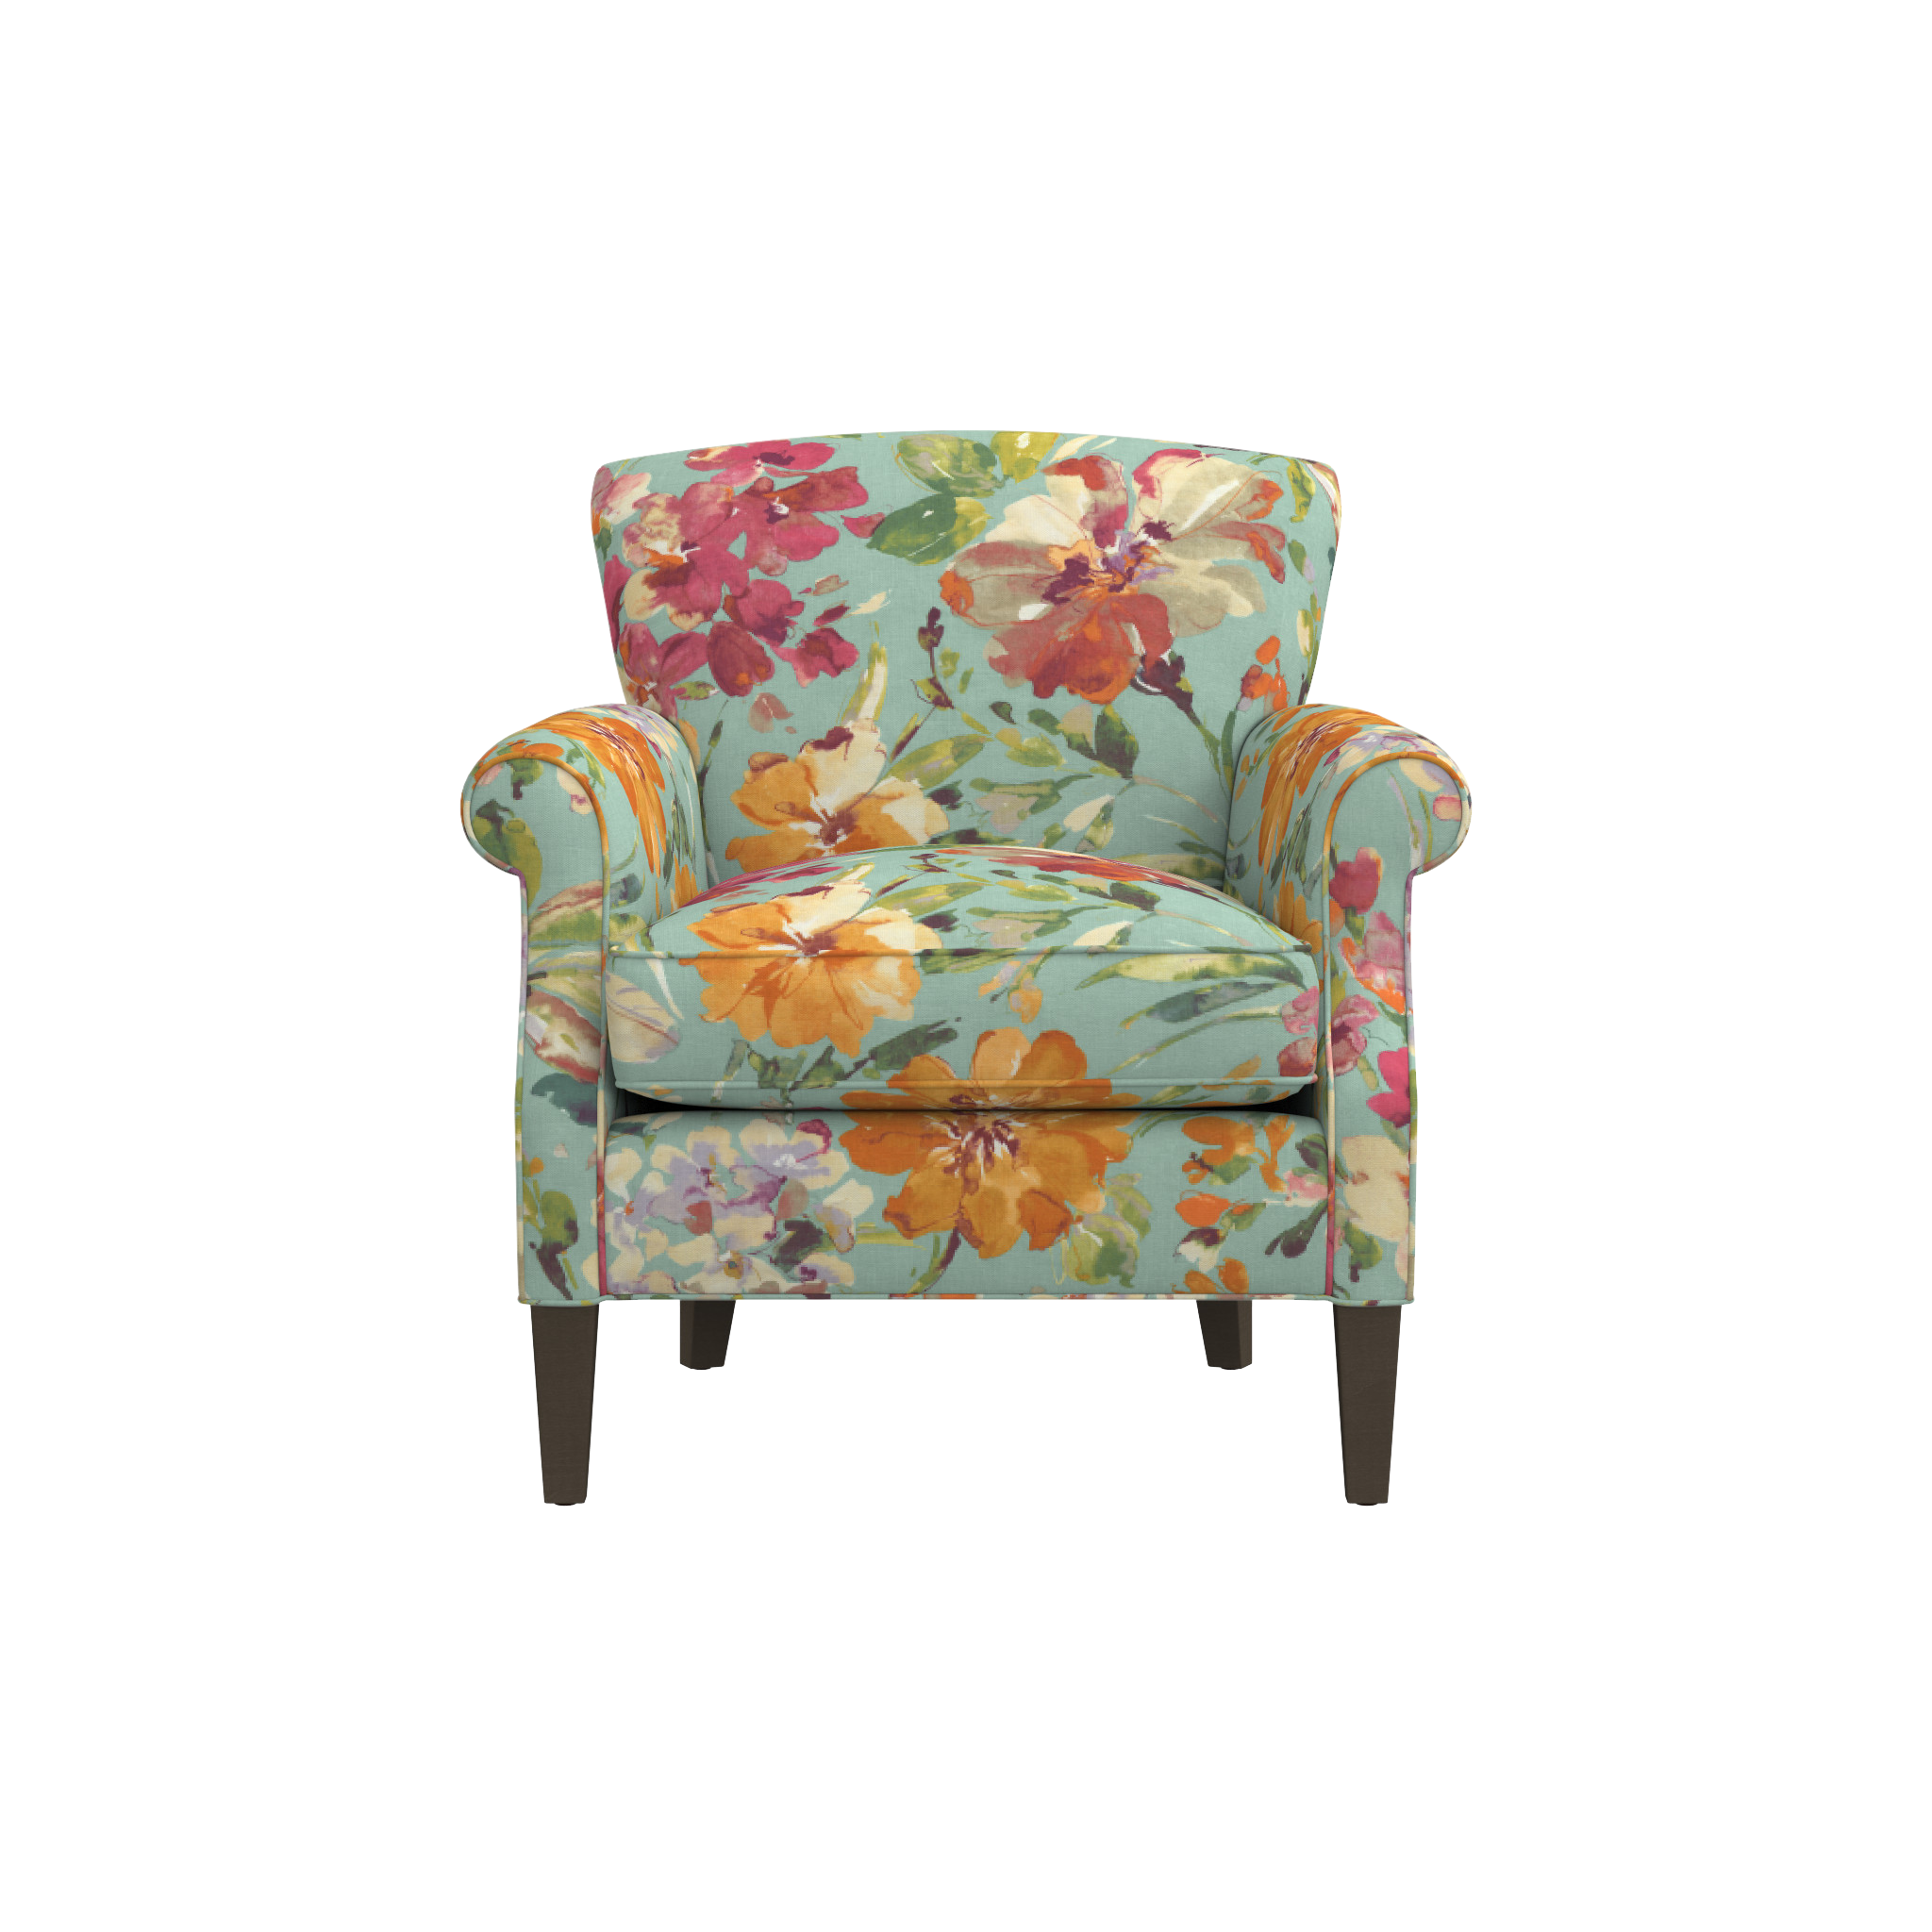 Astounding Shop Elyse Floral Accent Chair Beautiful Scaled Up Blooms Caraccident5 Cool Chair Designs And Ideas Caraccident5Info